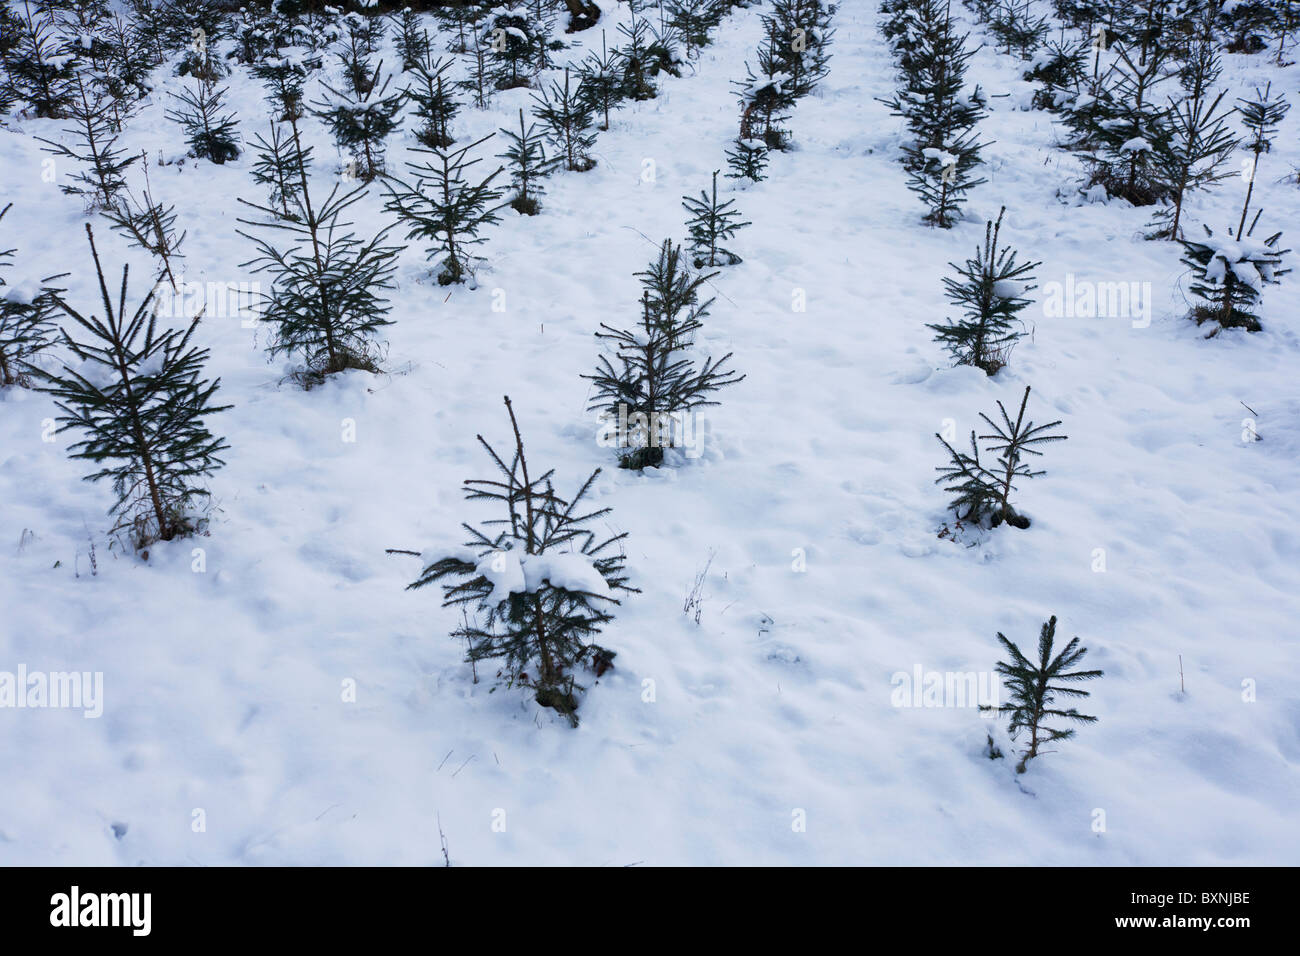 Young Christmas Trees Growing In Snowy Plantation On Private Land In